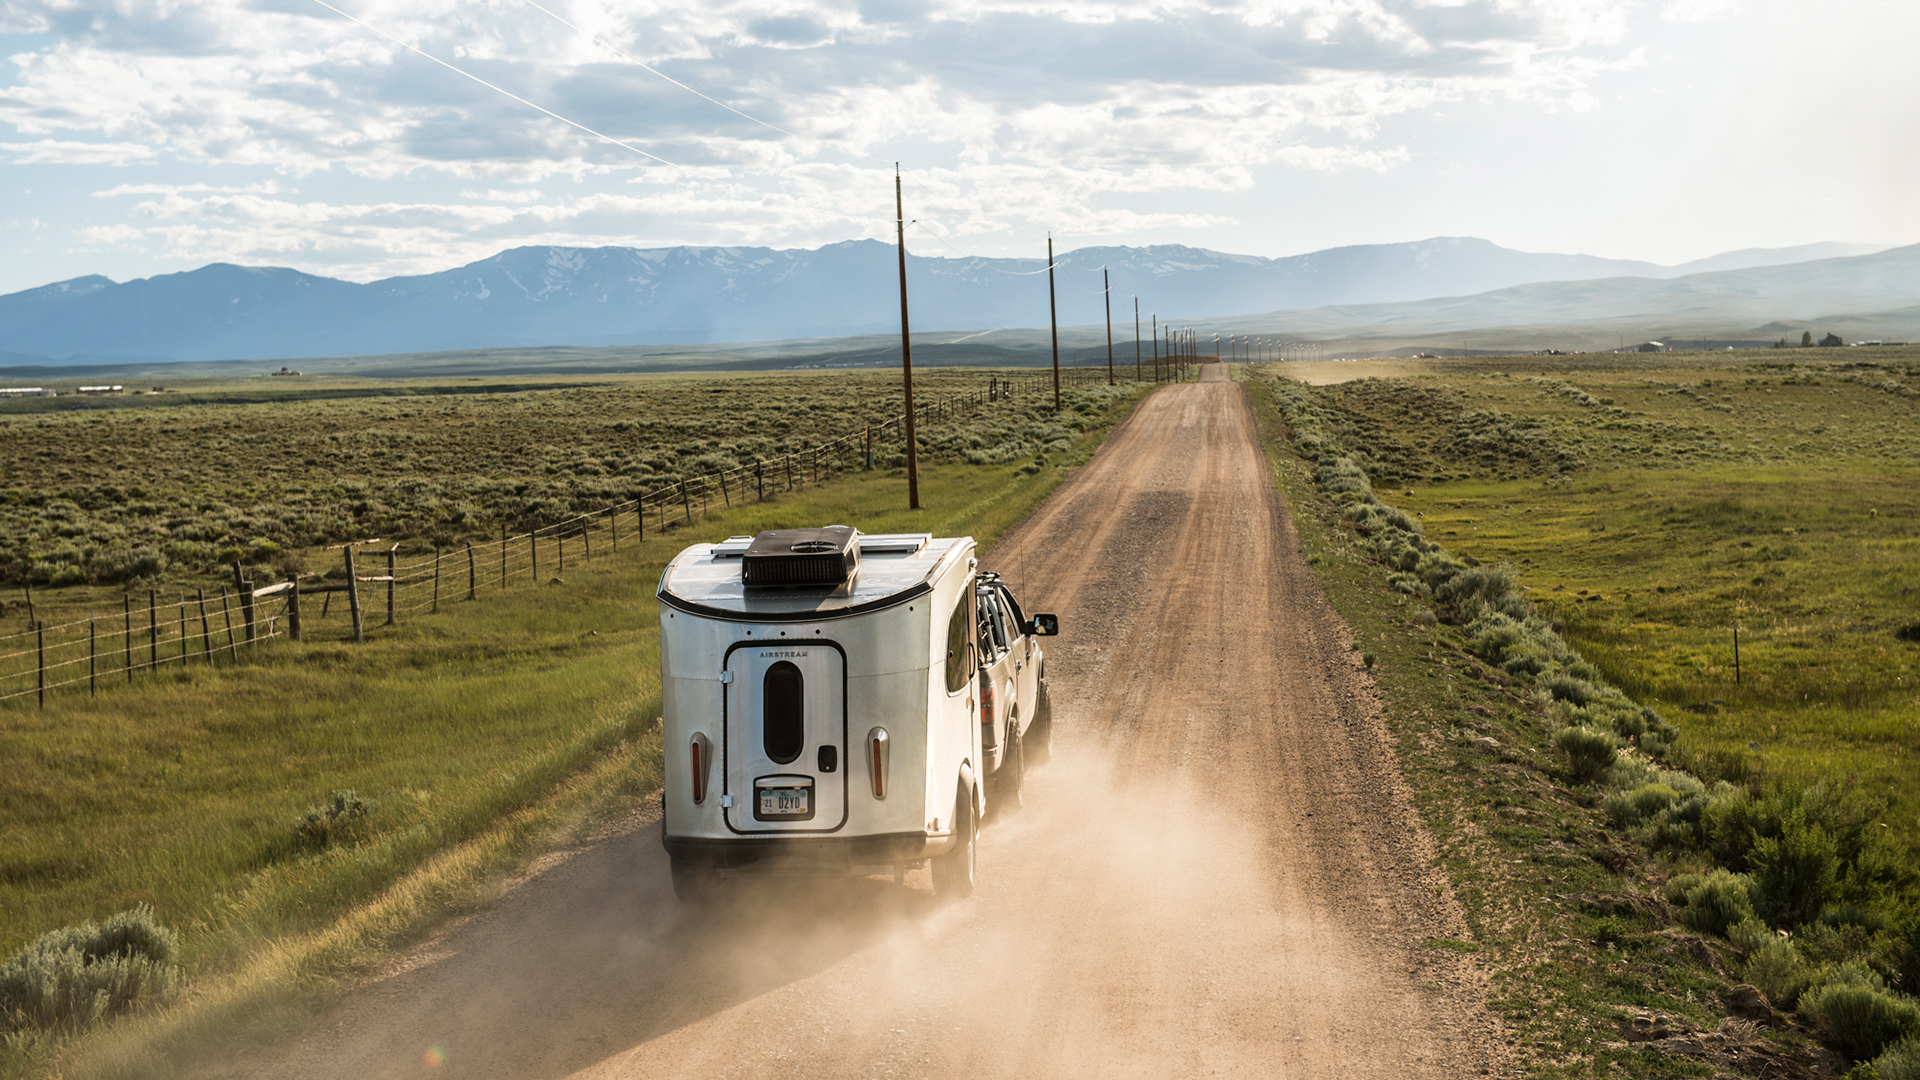 Airstream-Travel-Planning-Basecamp-Dirt-Trail